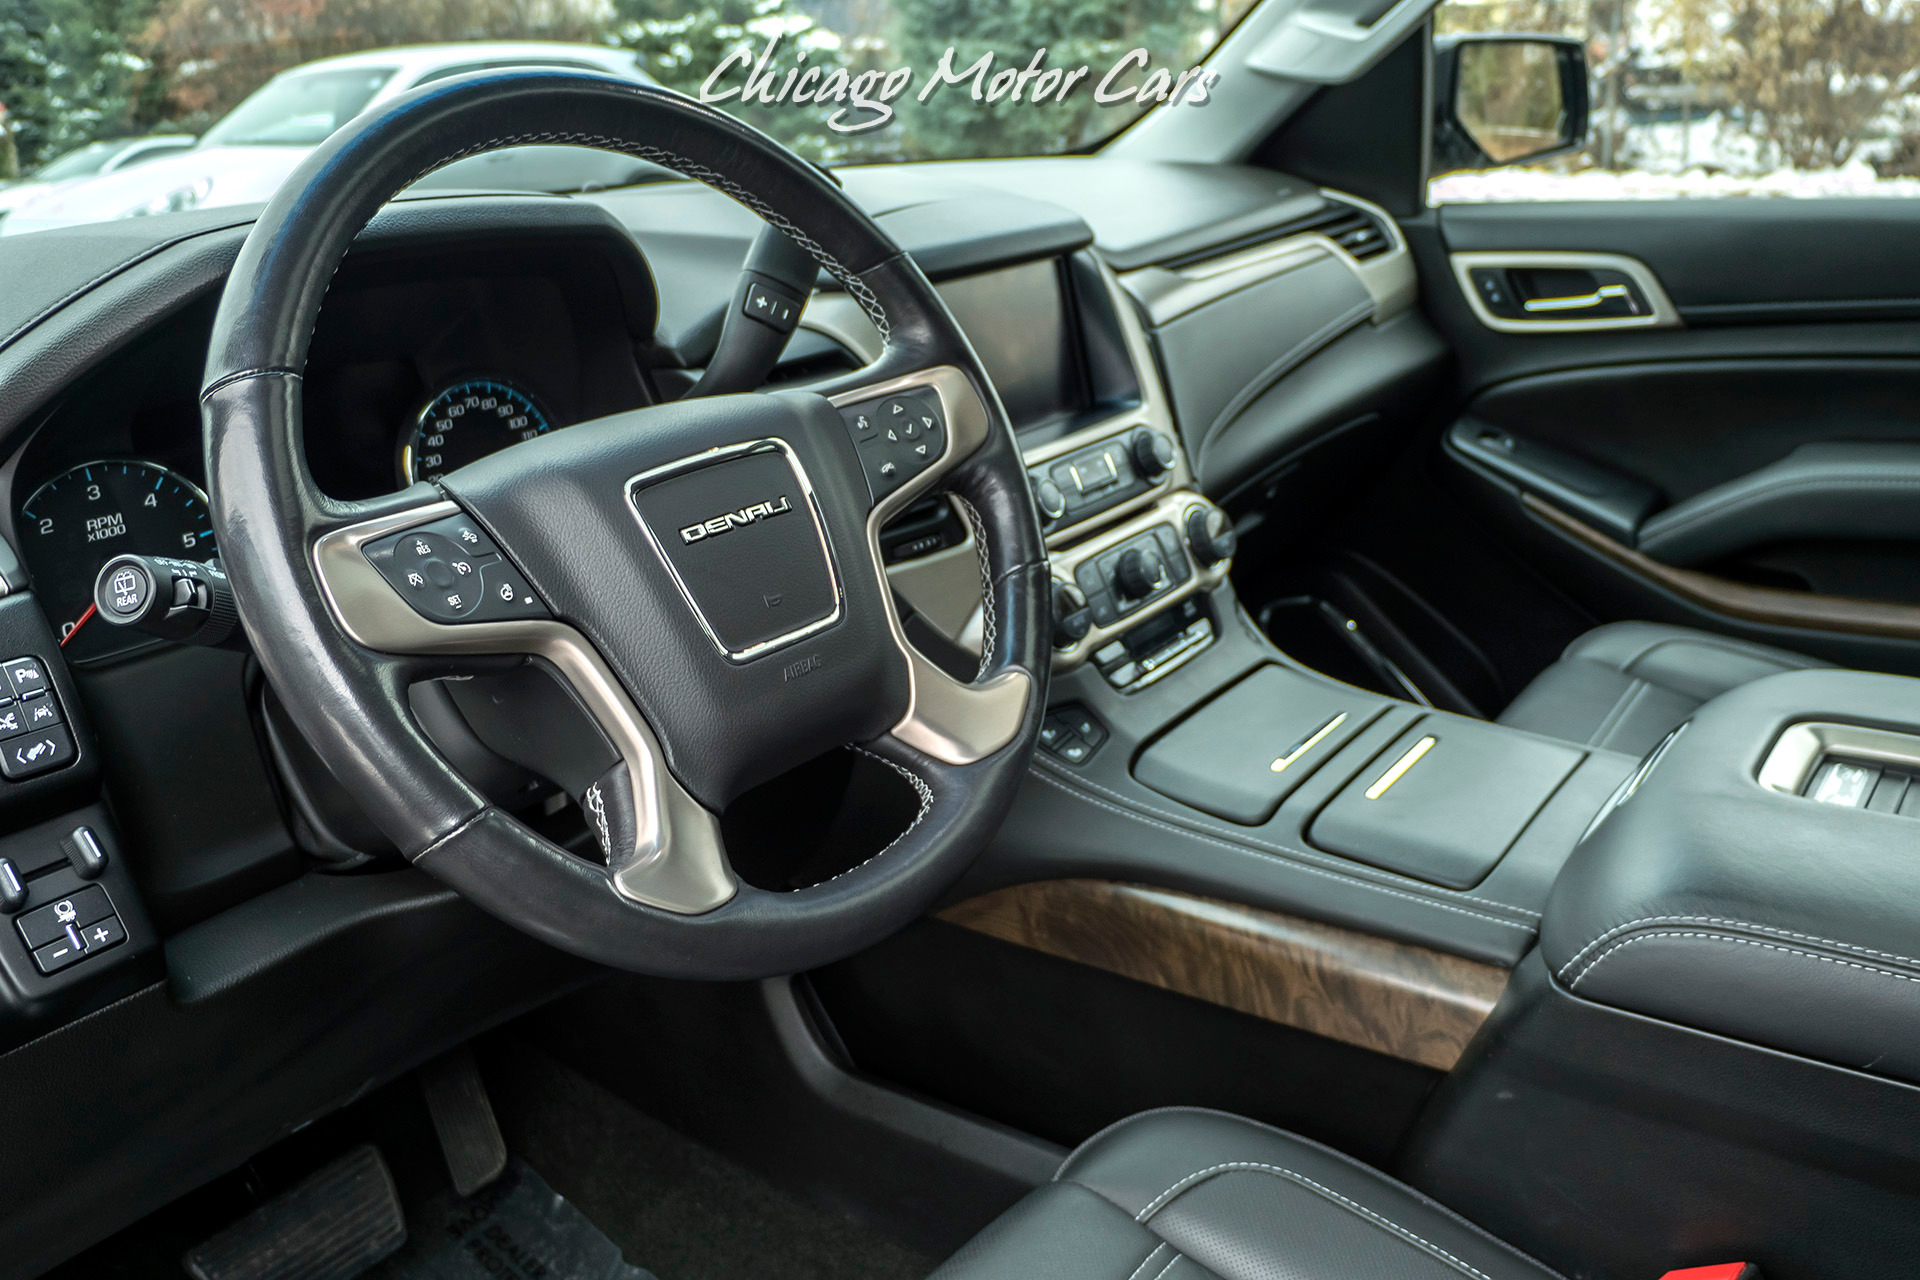 Used-2018-GMC-Yukon-Denali-AWD-SUV-MSRP-77K-DENALI-ULTIMATE-PACKAGE-ONLY-ONE-OWNER